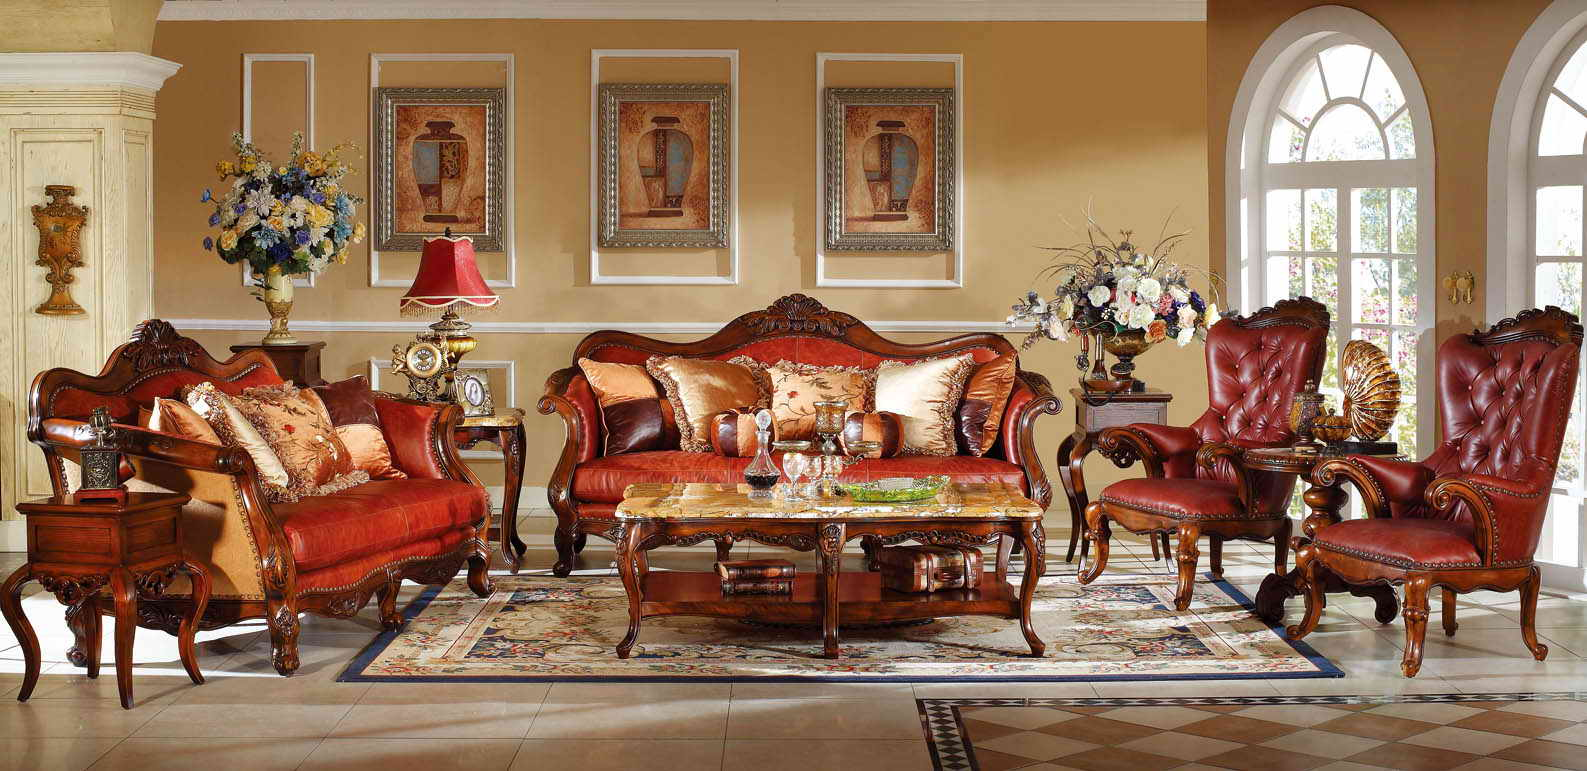 Goodwin Furniture Hot-sale antique wooden leather sofa sectional furniture supplier GH58.2